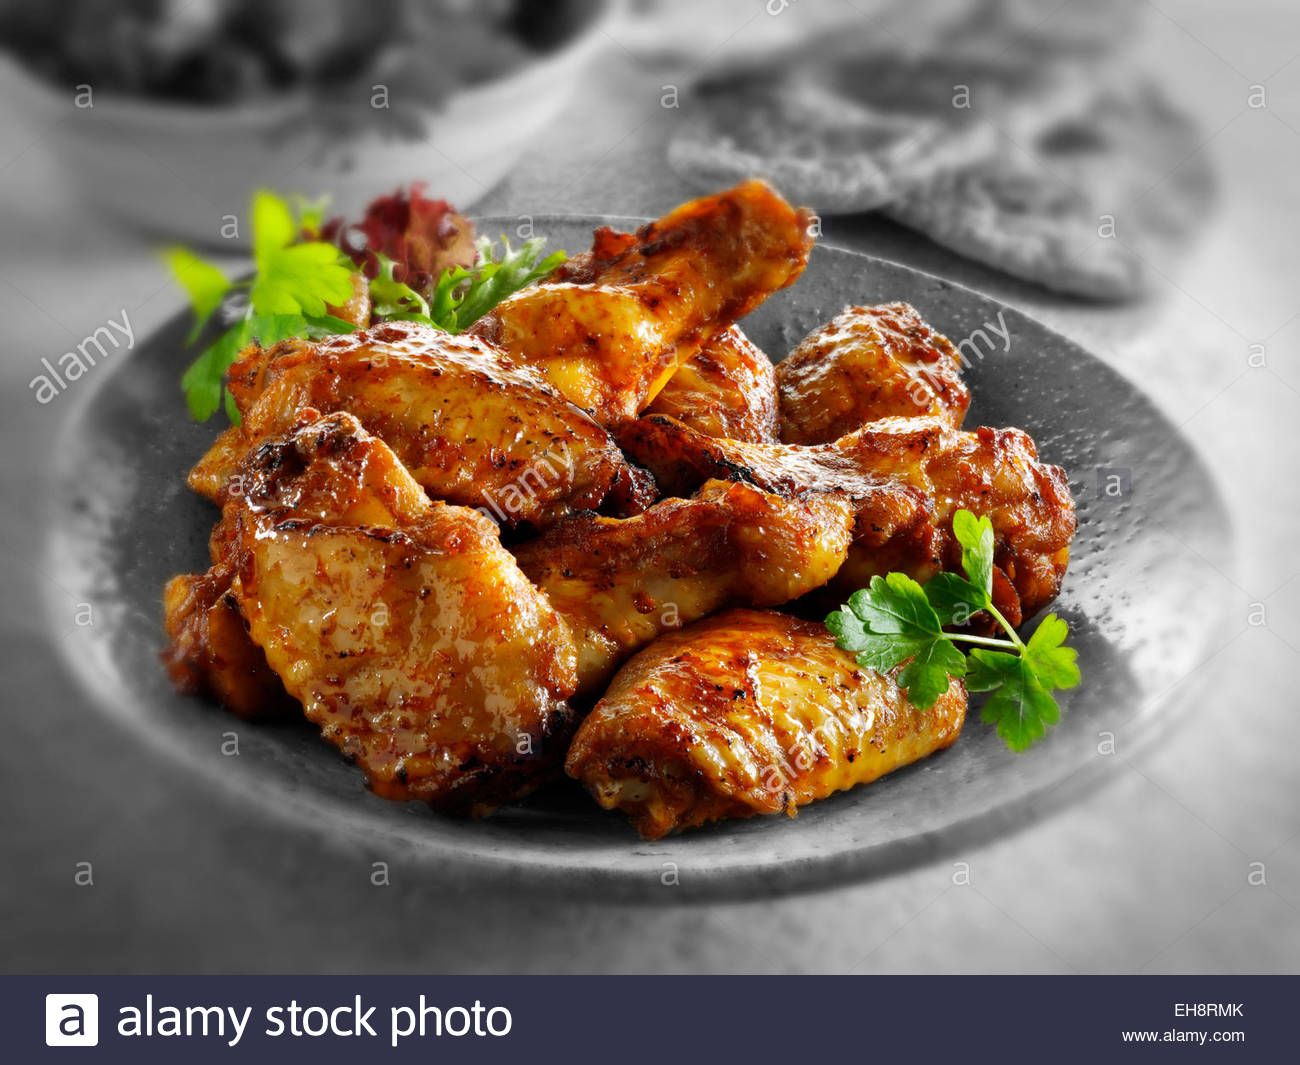 Traditional marinated barbecue chicken wings - Stock Image